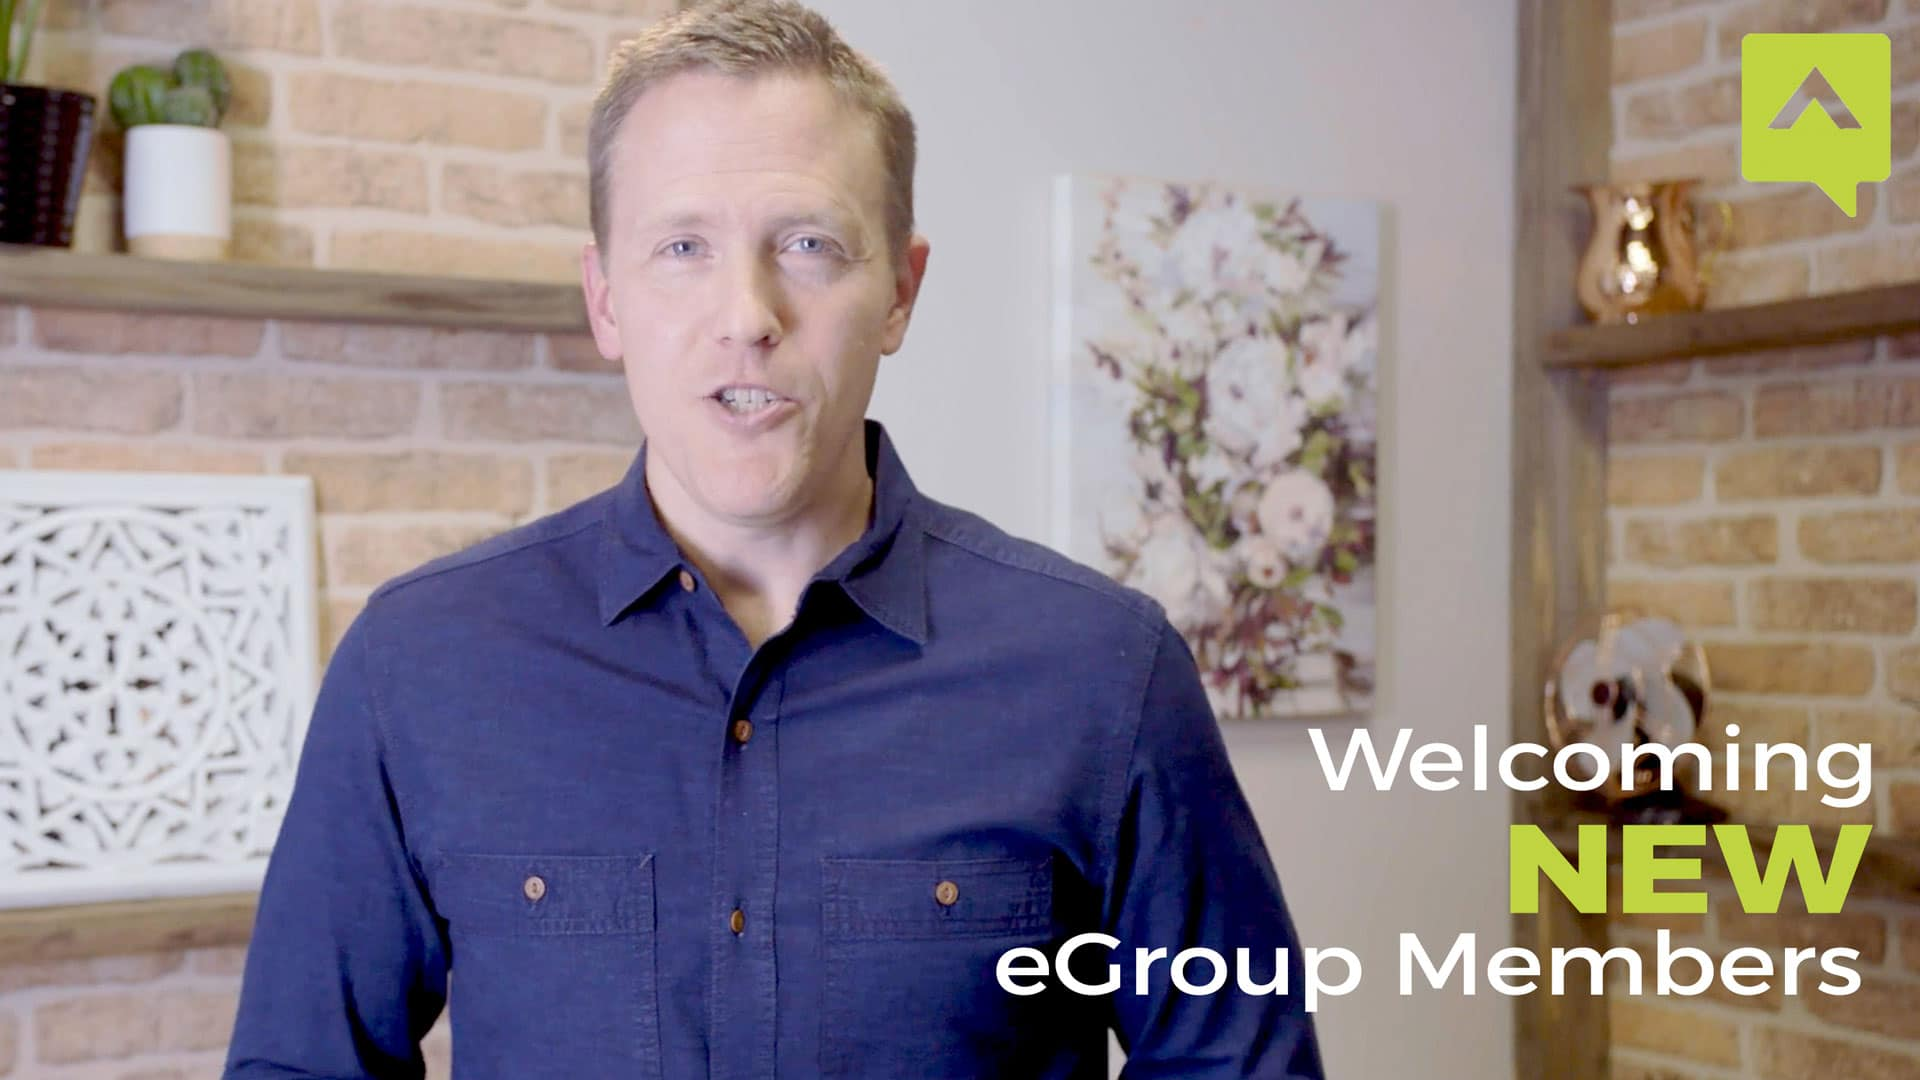 welcoming-new-egroup-members-recent-curriculum-img